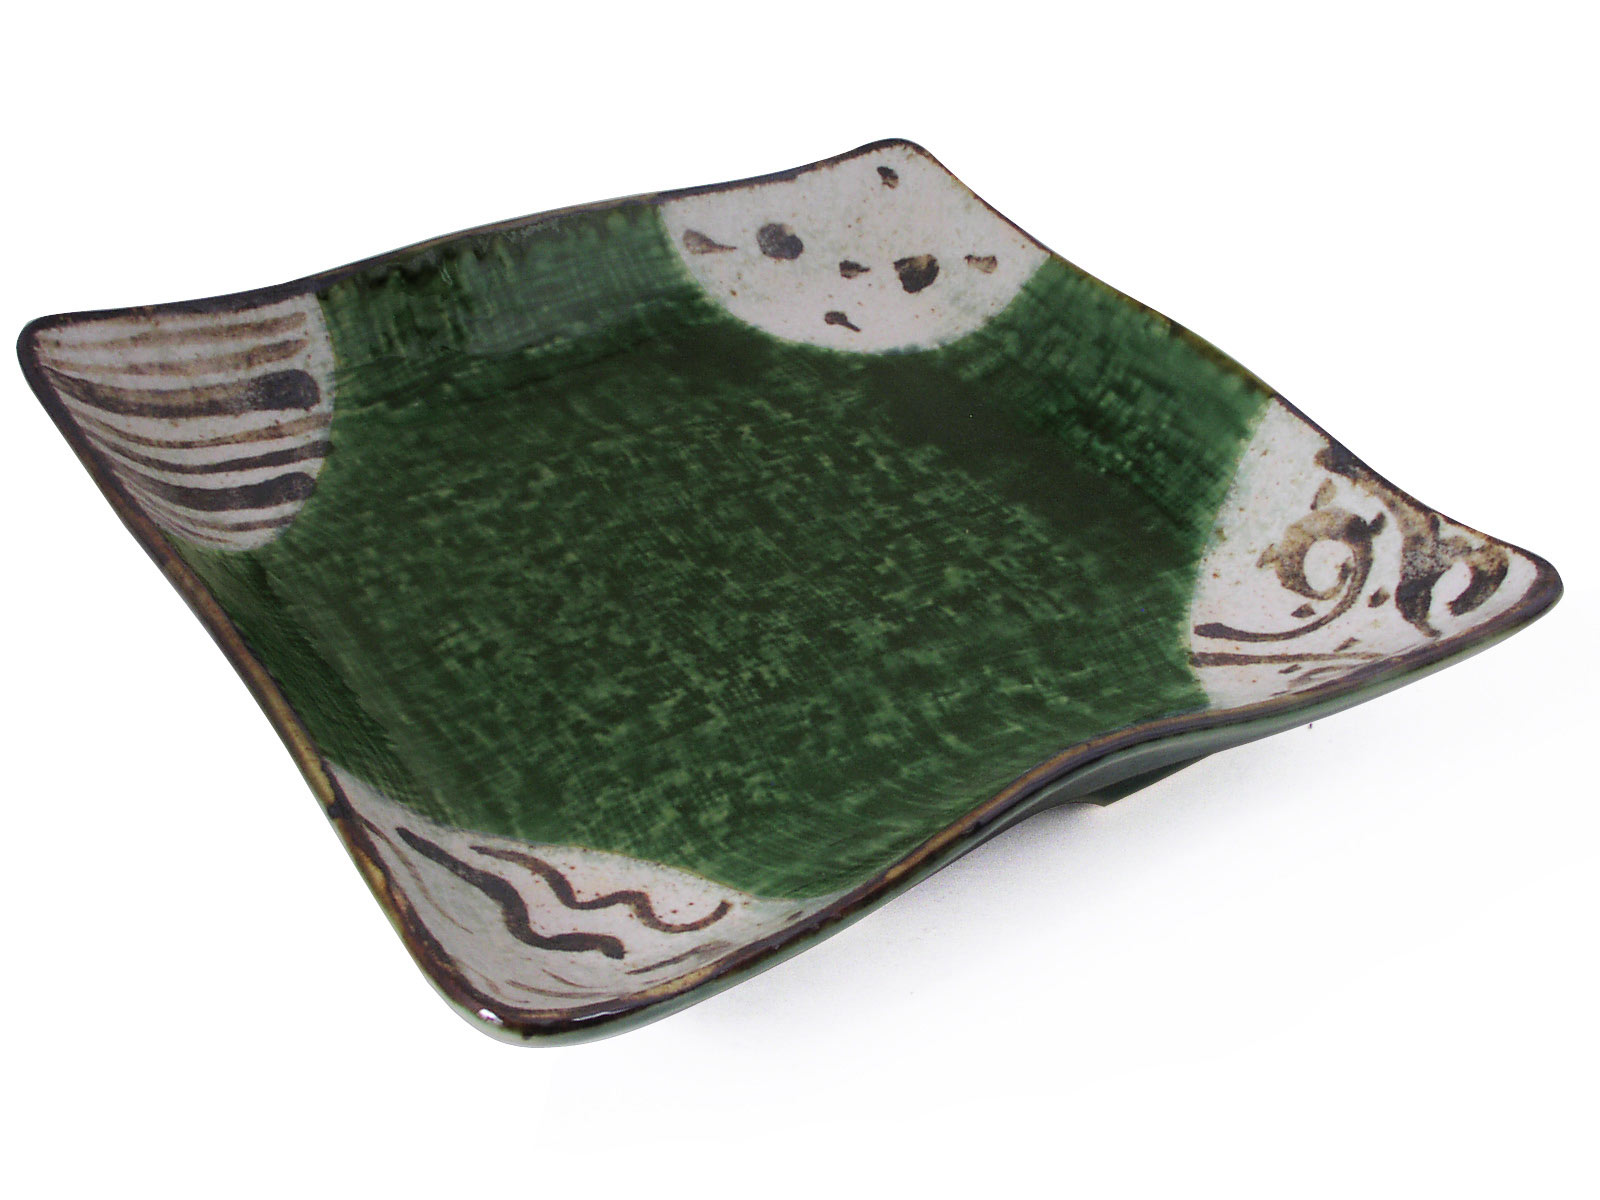 Abstract Sunlit Forest Oribe Ware Japanese Serving Dish